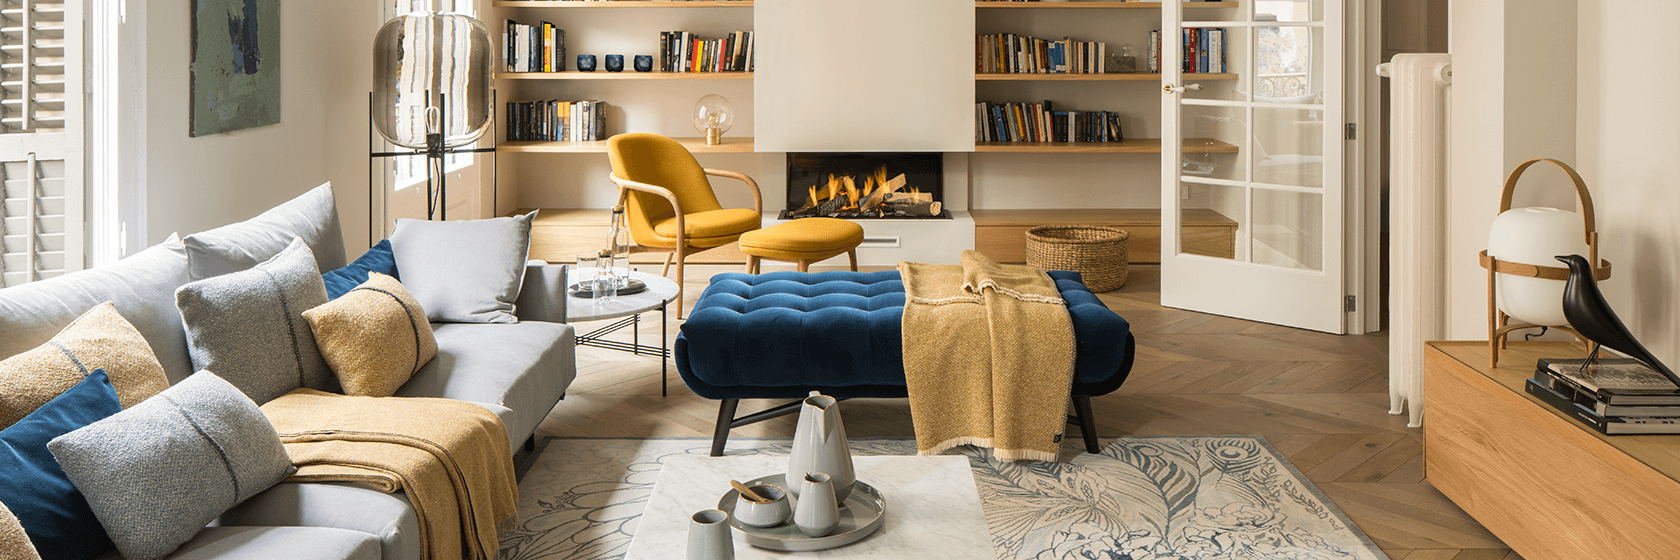 Best of Houzz 2020 Awards | The Room Studio